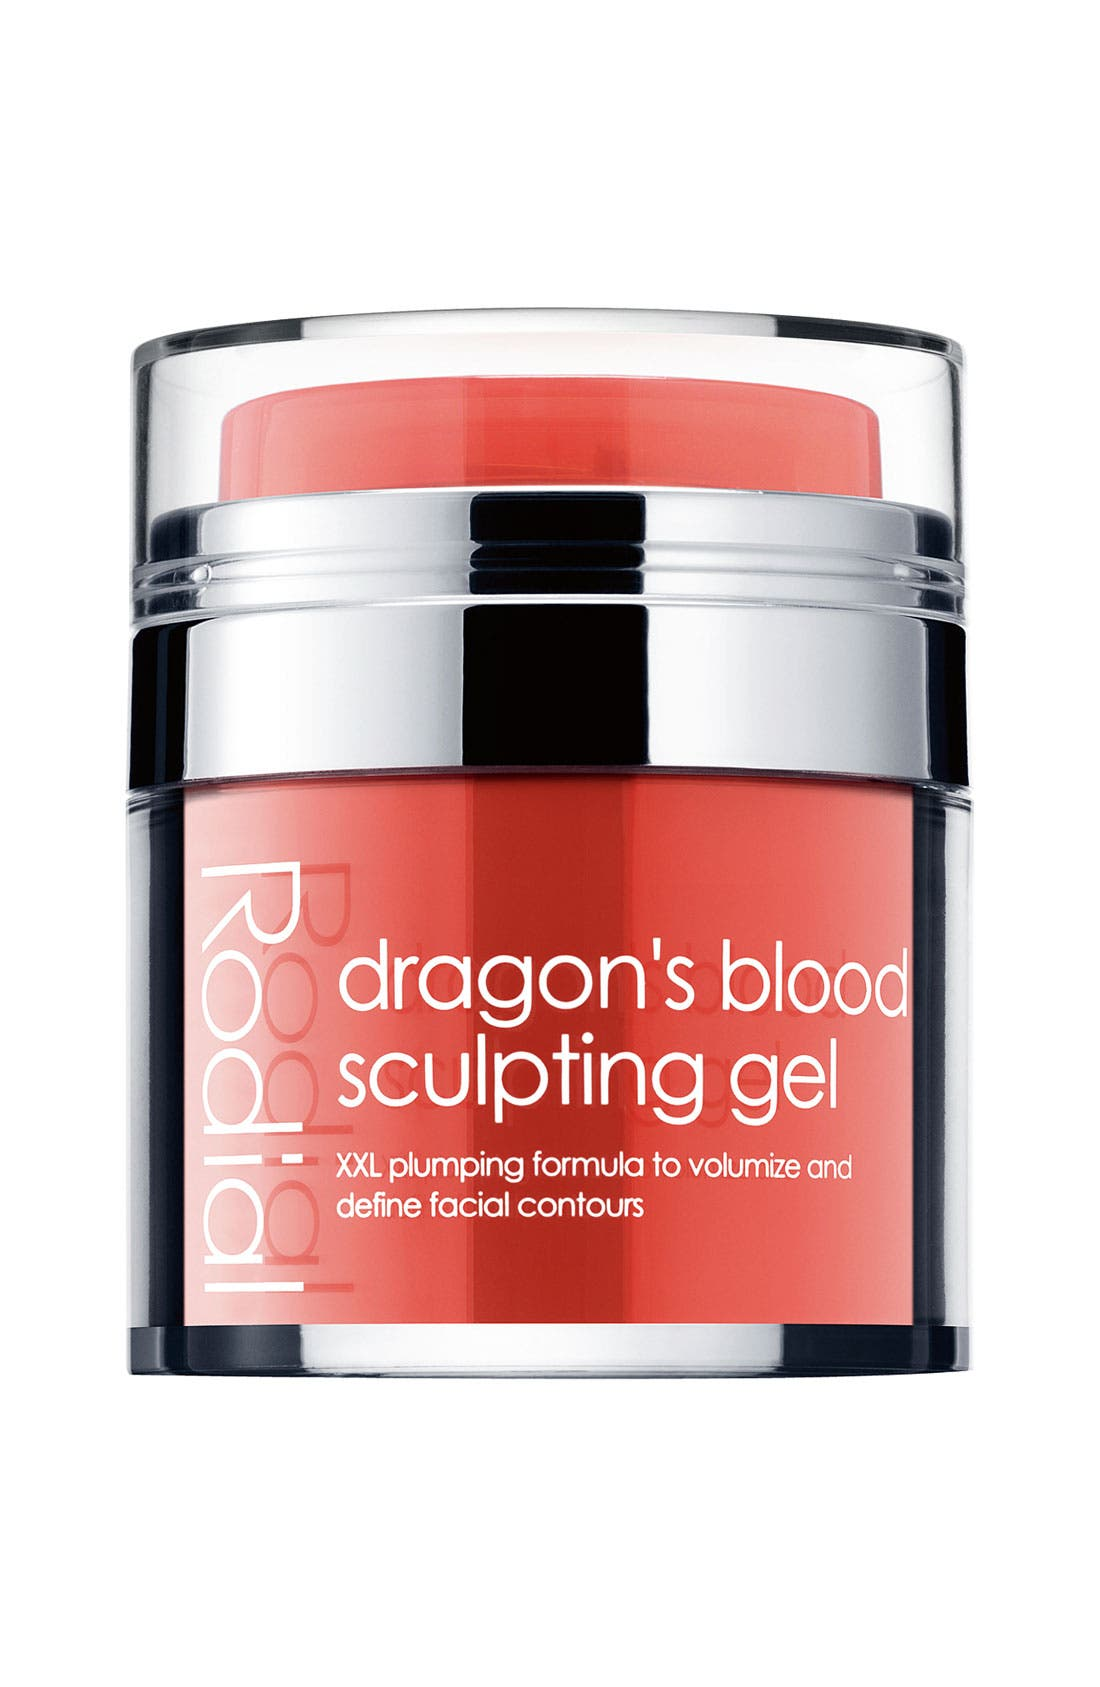 'Dragon's Blood' Sculpting Gel,                             Main thumbnail 1, color,                             000